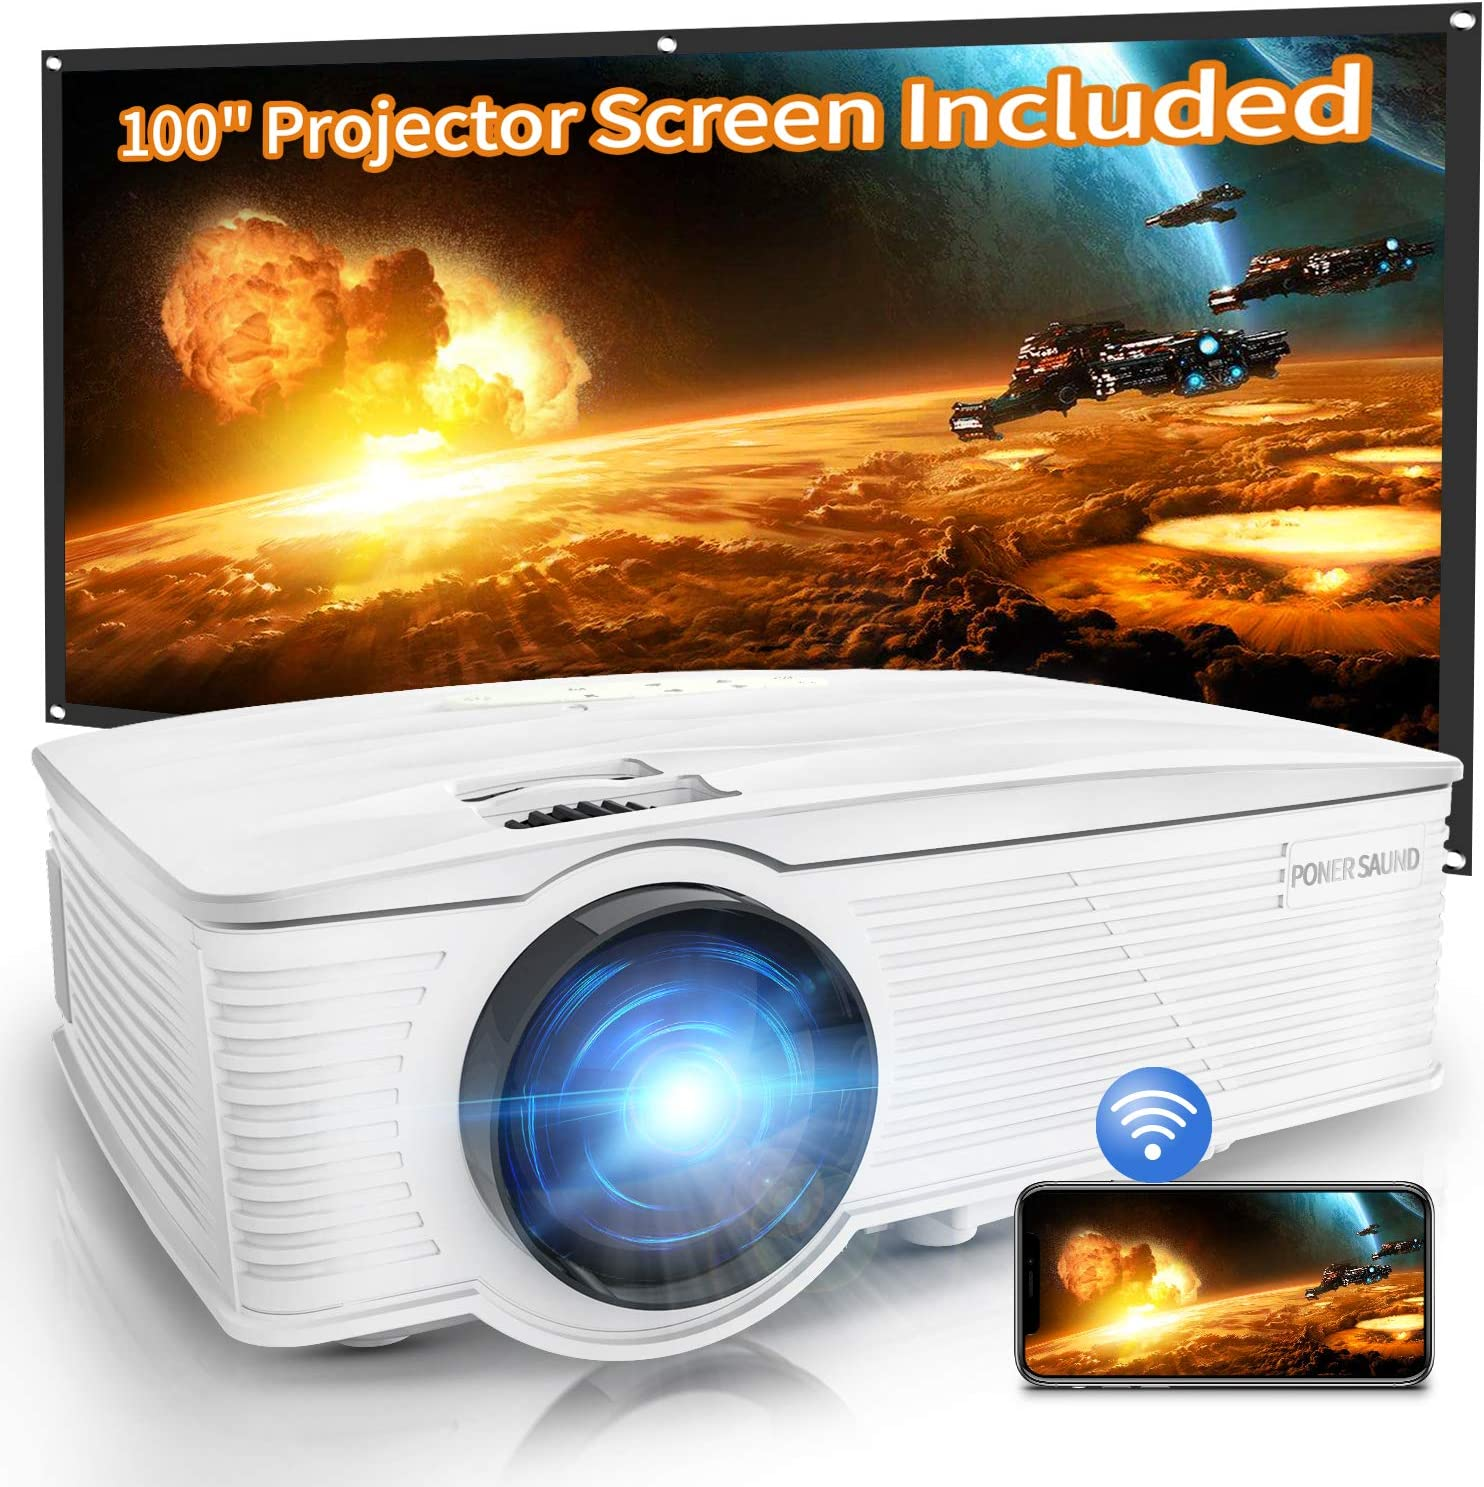 "Projector, WiFi Mini Projector 1080P Supported with 100"" Projector Screen, 5500 Lux 210"" Display Movie Projector, Compatible with Phone, Computer, Laptop, USB, HDMI, VGA-Home, Outdoor Entertainment"